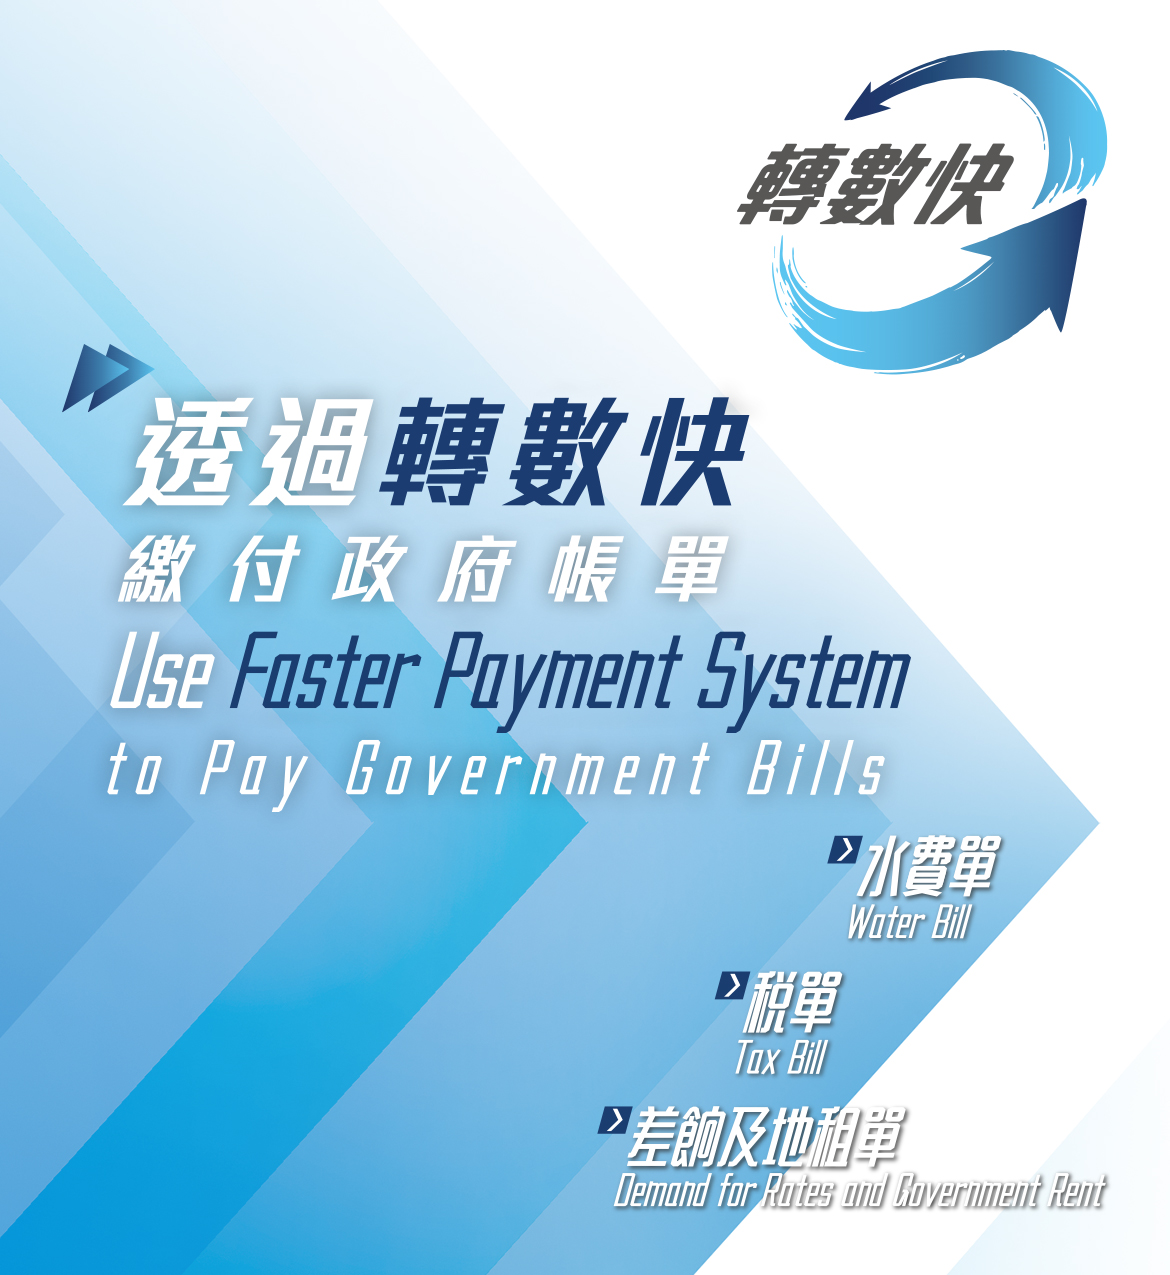 Leaflet - Making payments to Government